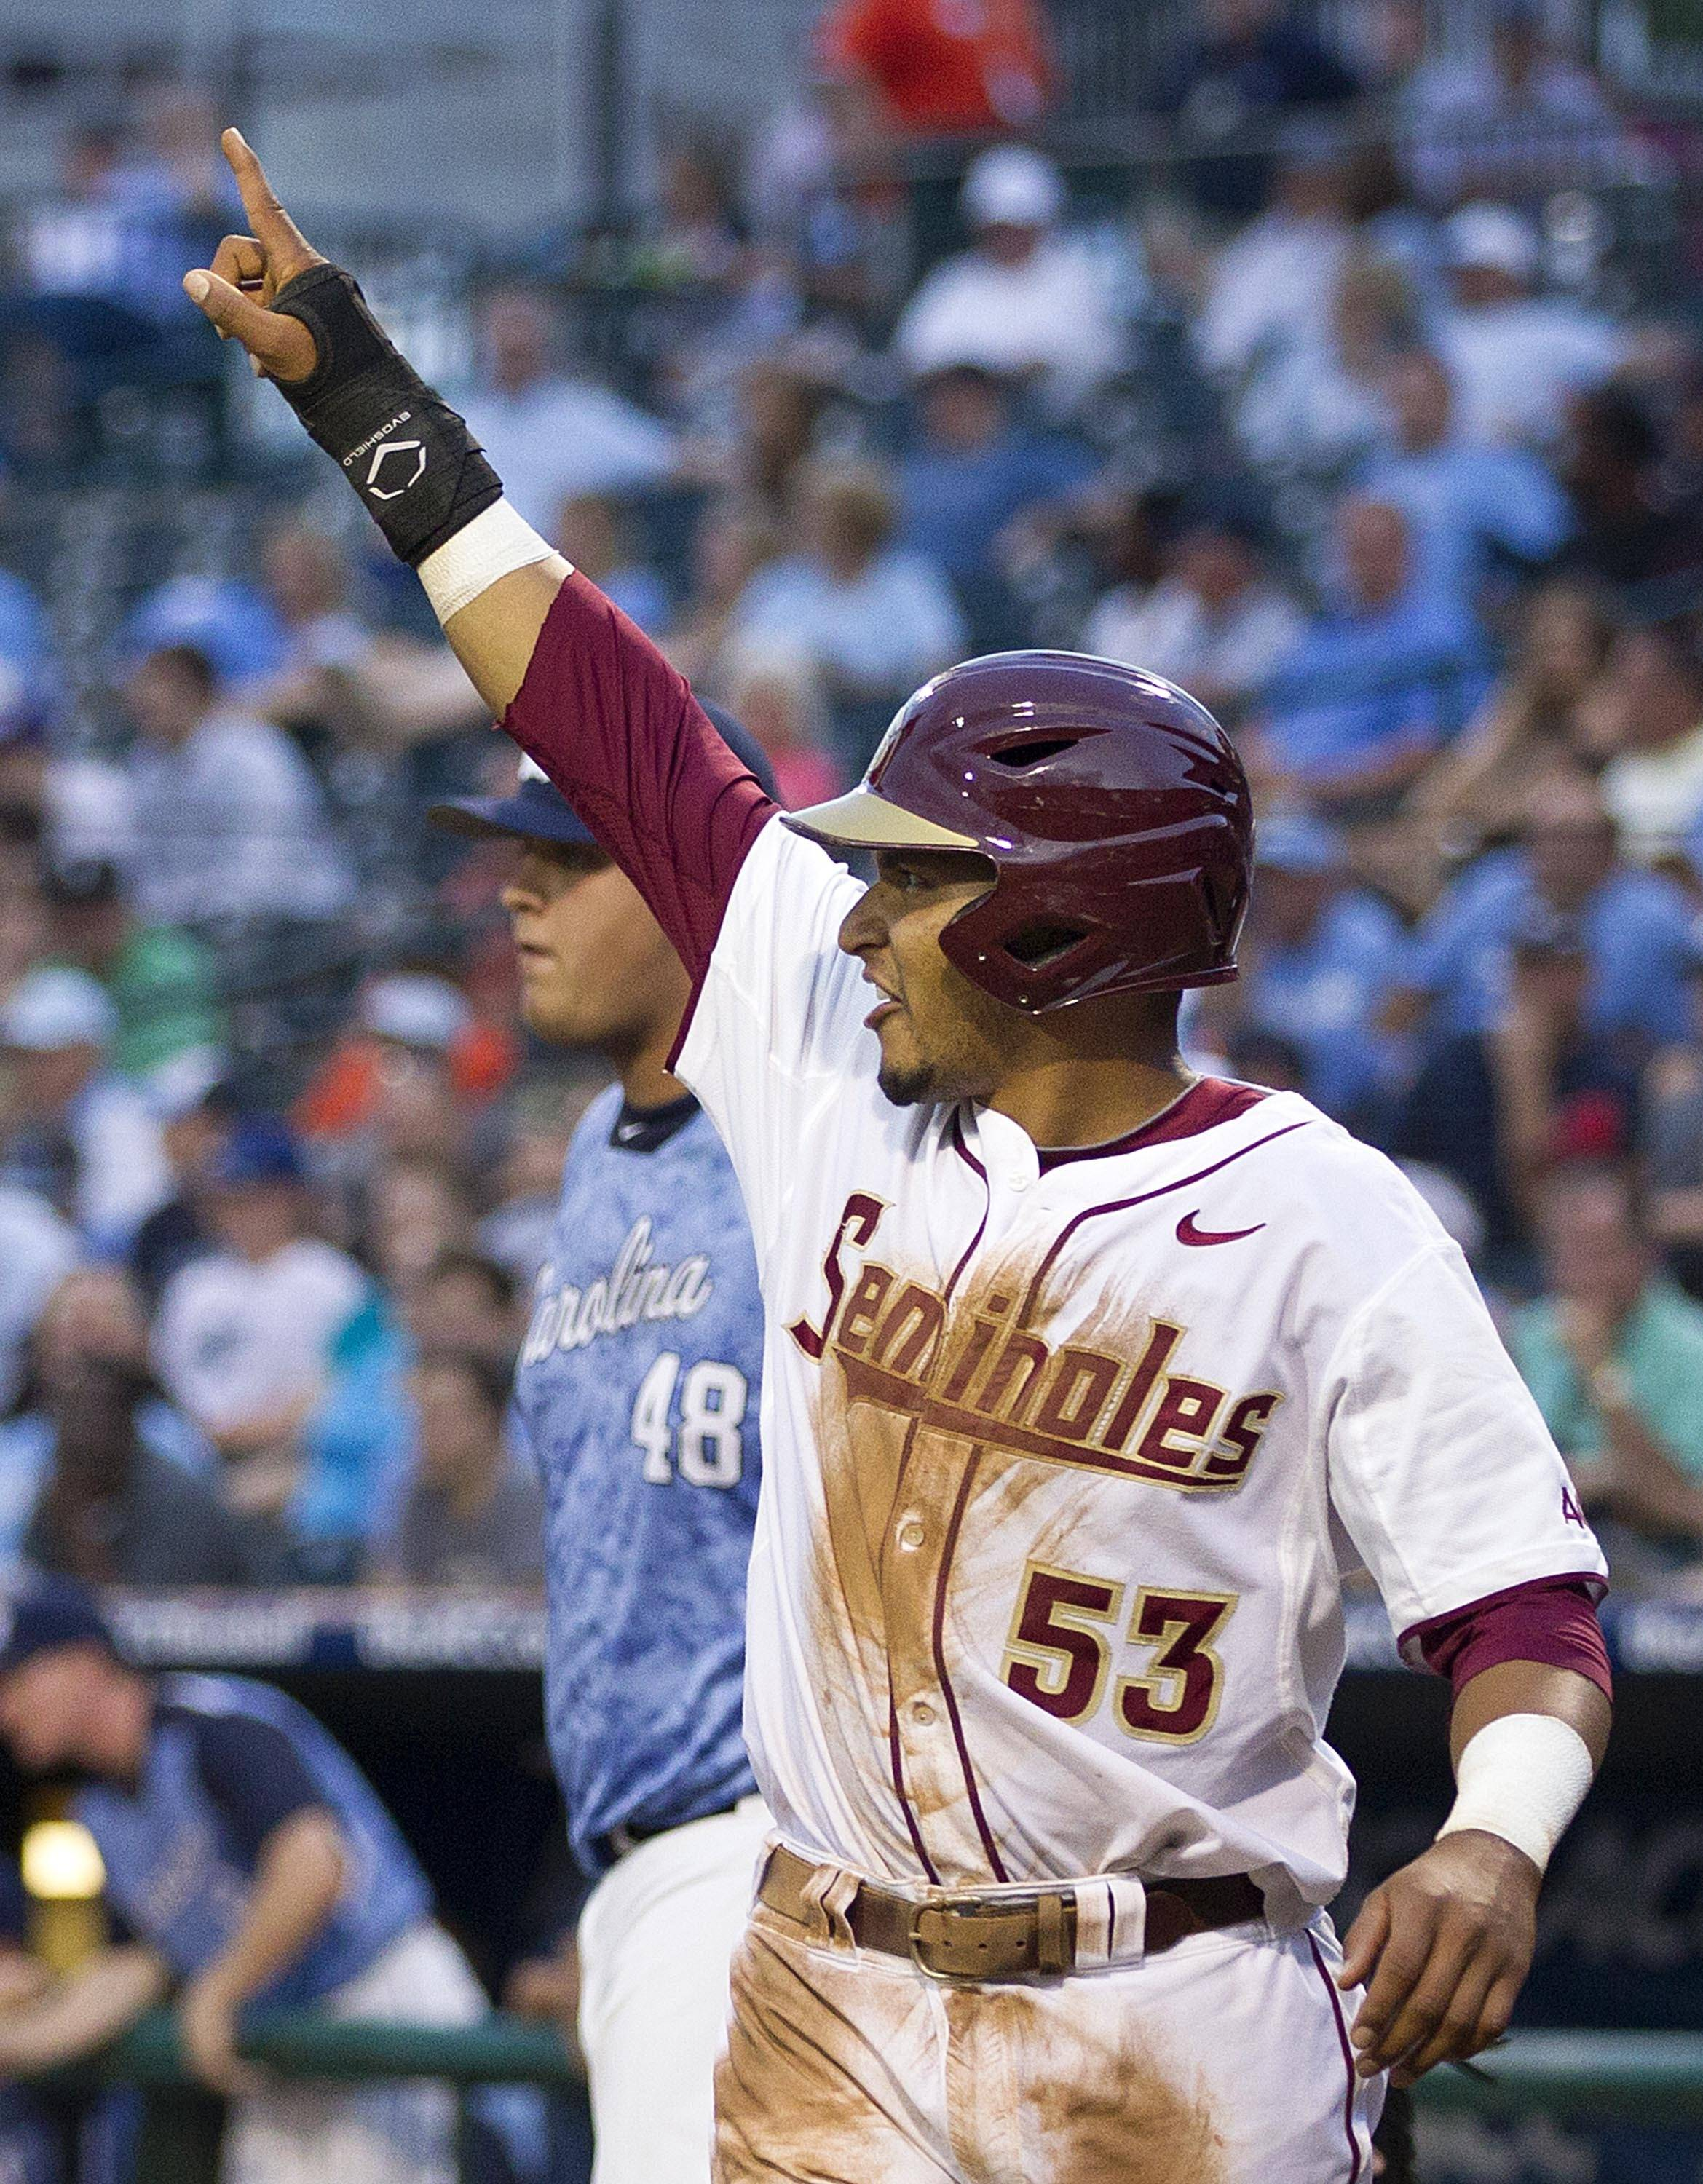 Jose Brizuela points to a teammate after scoring against UNC.